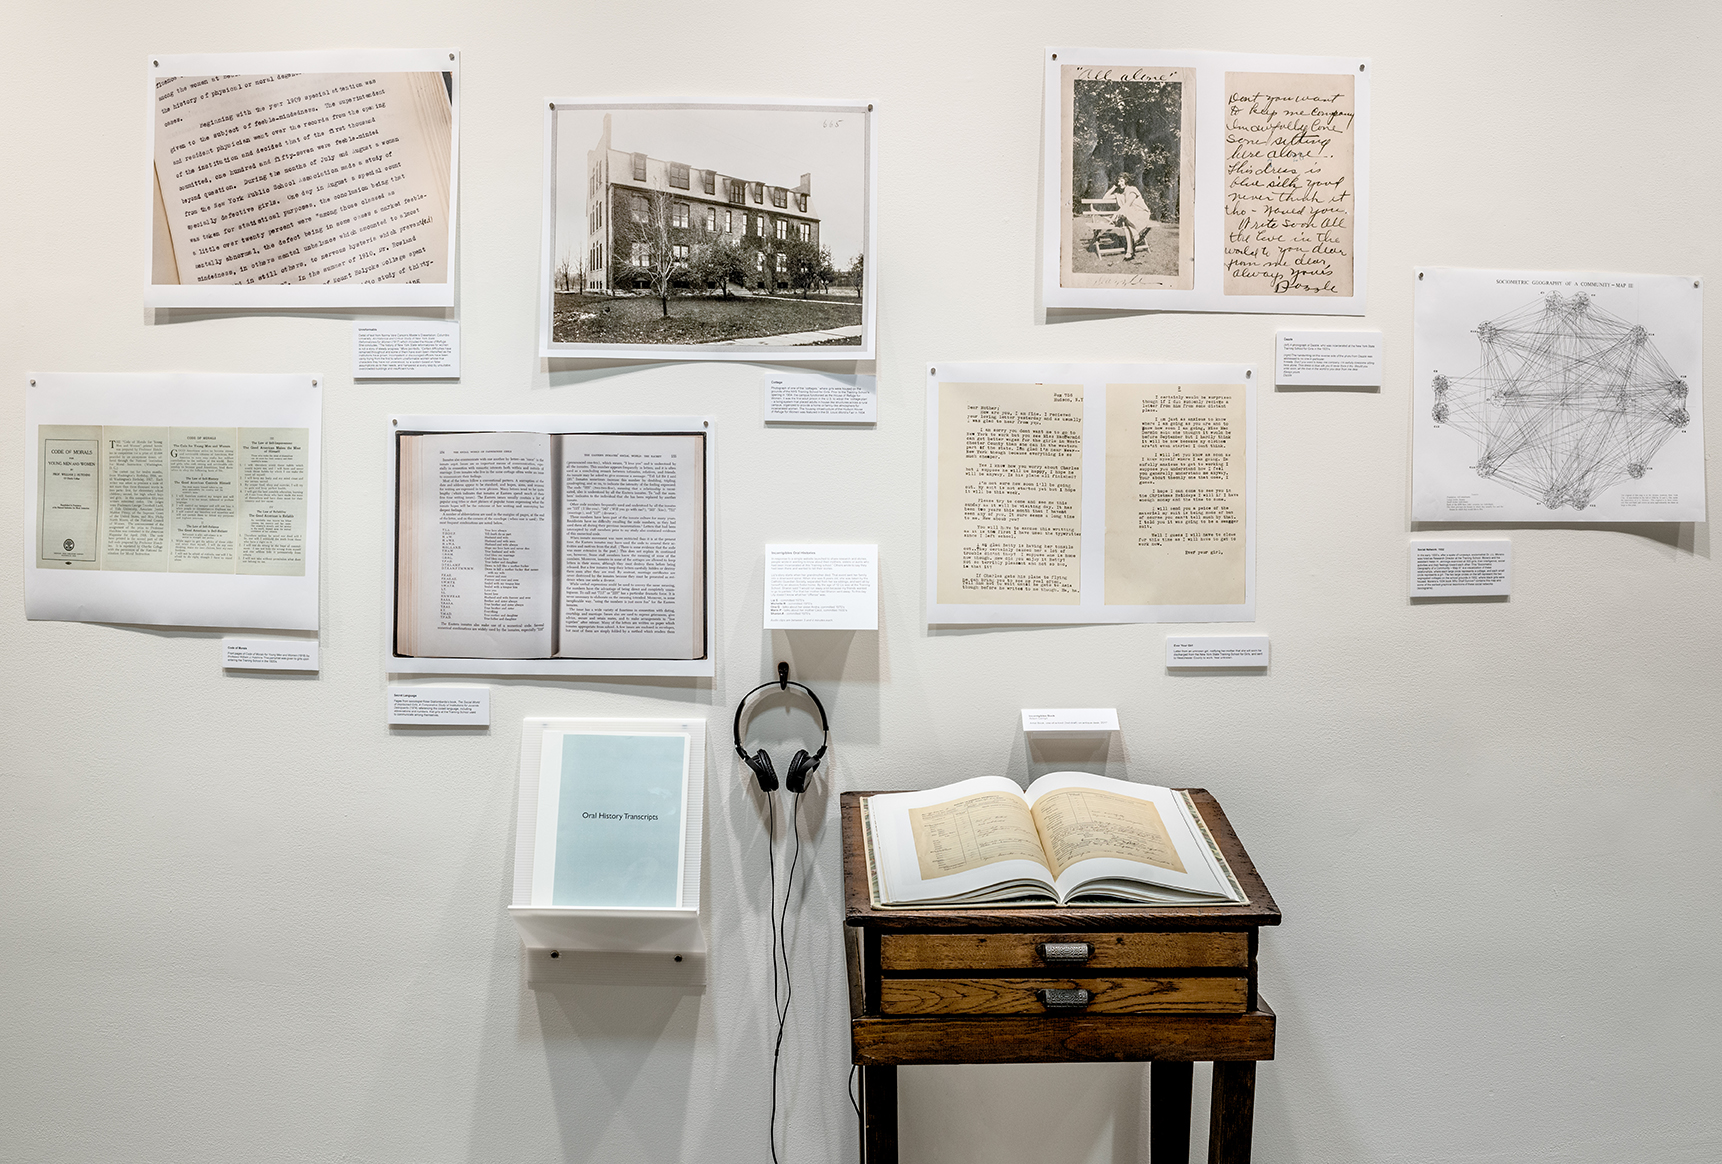 Incorrigible Stories,  Alison Cornyn. Book Installation and Oral Histories